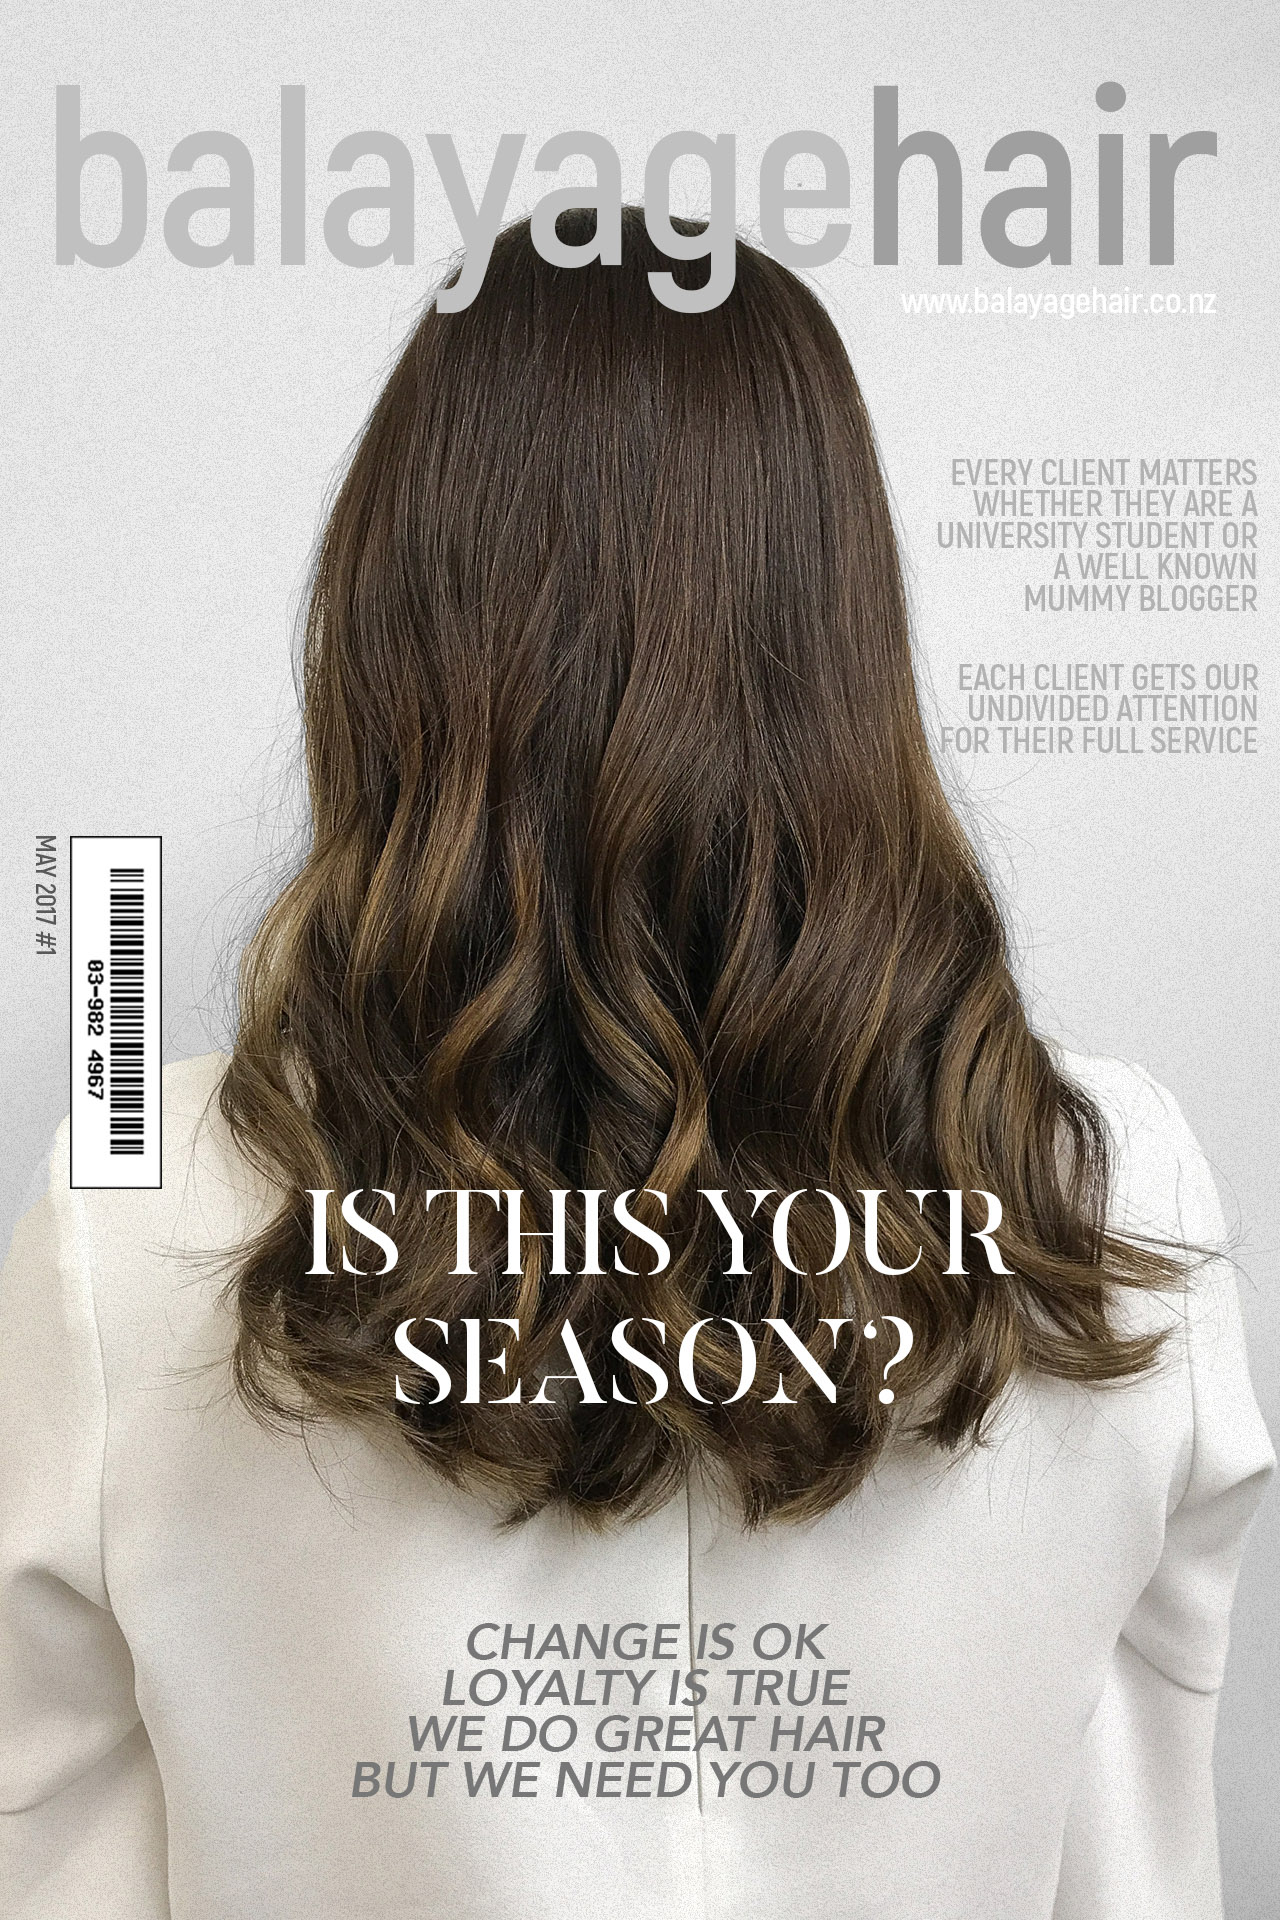 IS THIS YOUR SEASON? - We are currently on the lookout for two experienced stylists. We would love to sit down with you and have a chat to see which options we have, would best suit where you are at in your career.Whether you would like to rent-a-chair or whether you would like to receive wages and work towards running your own business via chair rental in the future, we can map out the most suitable plan to get you heading in the right direction.If you like what we do and you think you can add to our squad then leave us a message or contact Tom +64 (21) 162 7968